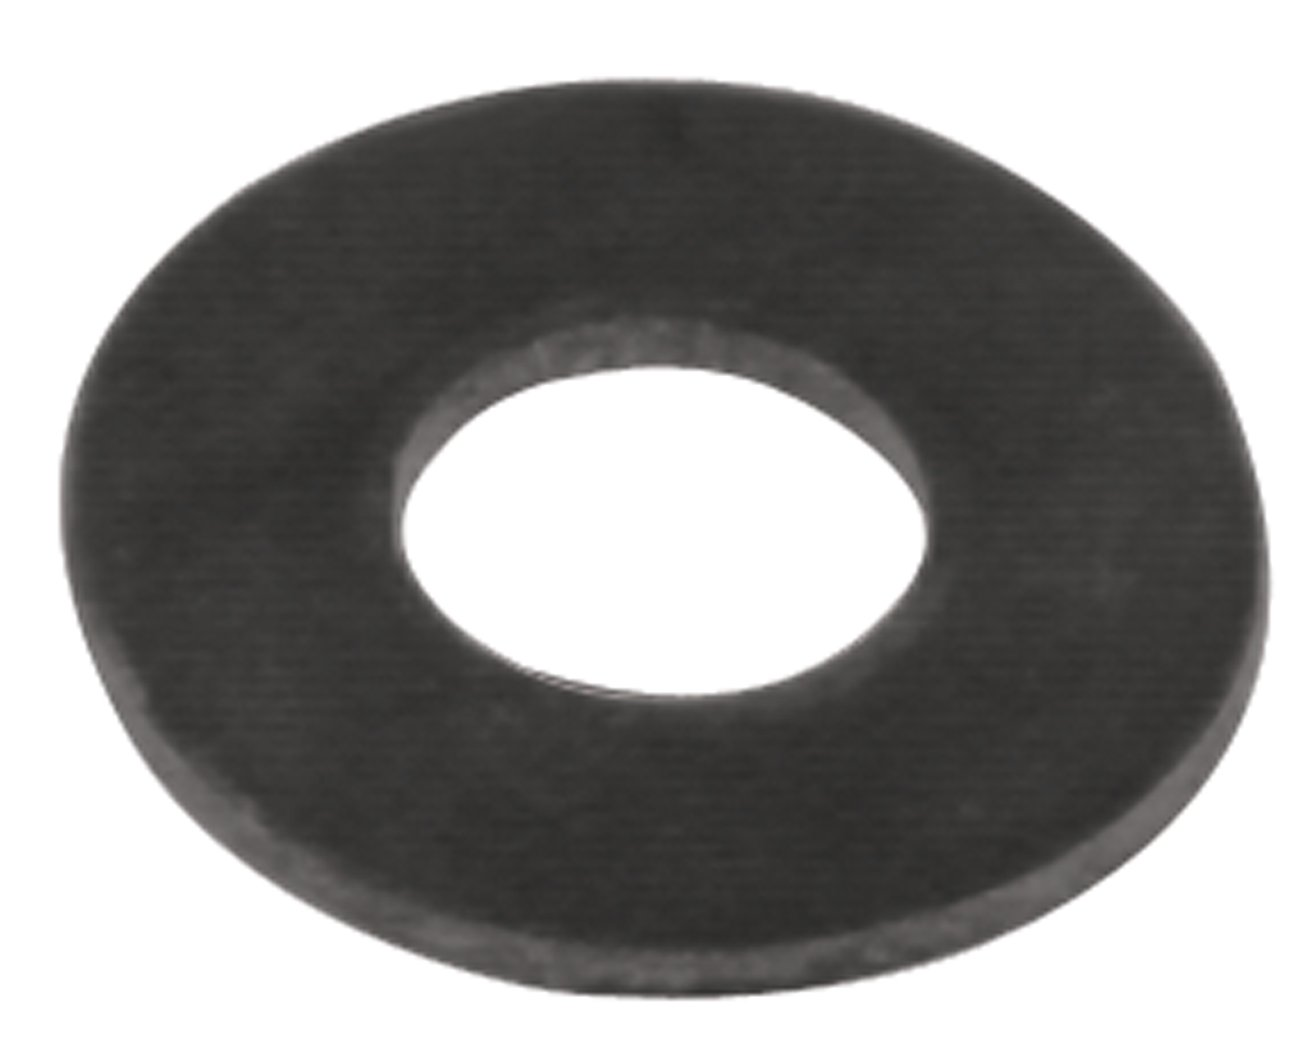 The Hillman Group The Hillman Group 4332 7 8 ID x 2 3 4 OD x 1 8 In. Large Neoprene Washer 5 Pack